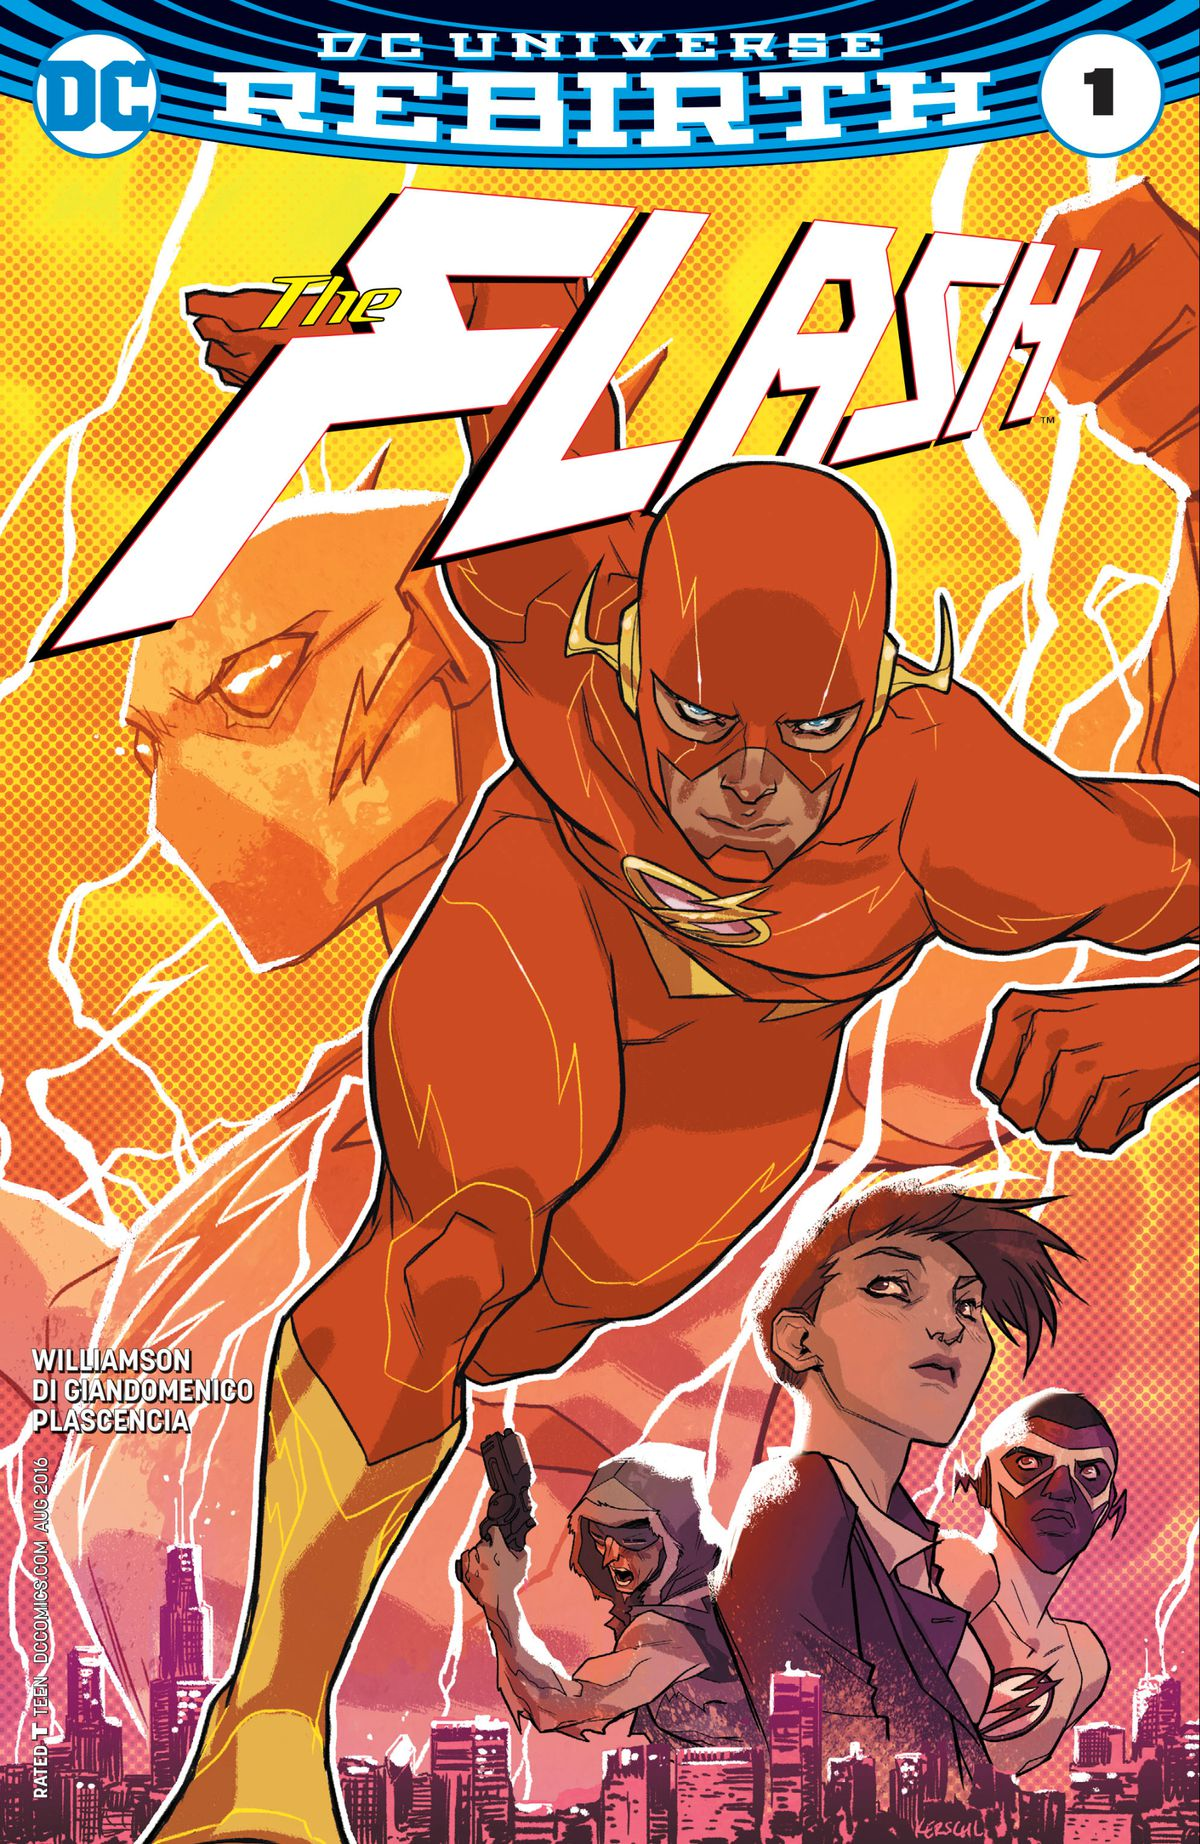 The Flash dashes through a lightning storm on the cover of The Flash #1, DC Comics (2016).